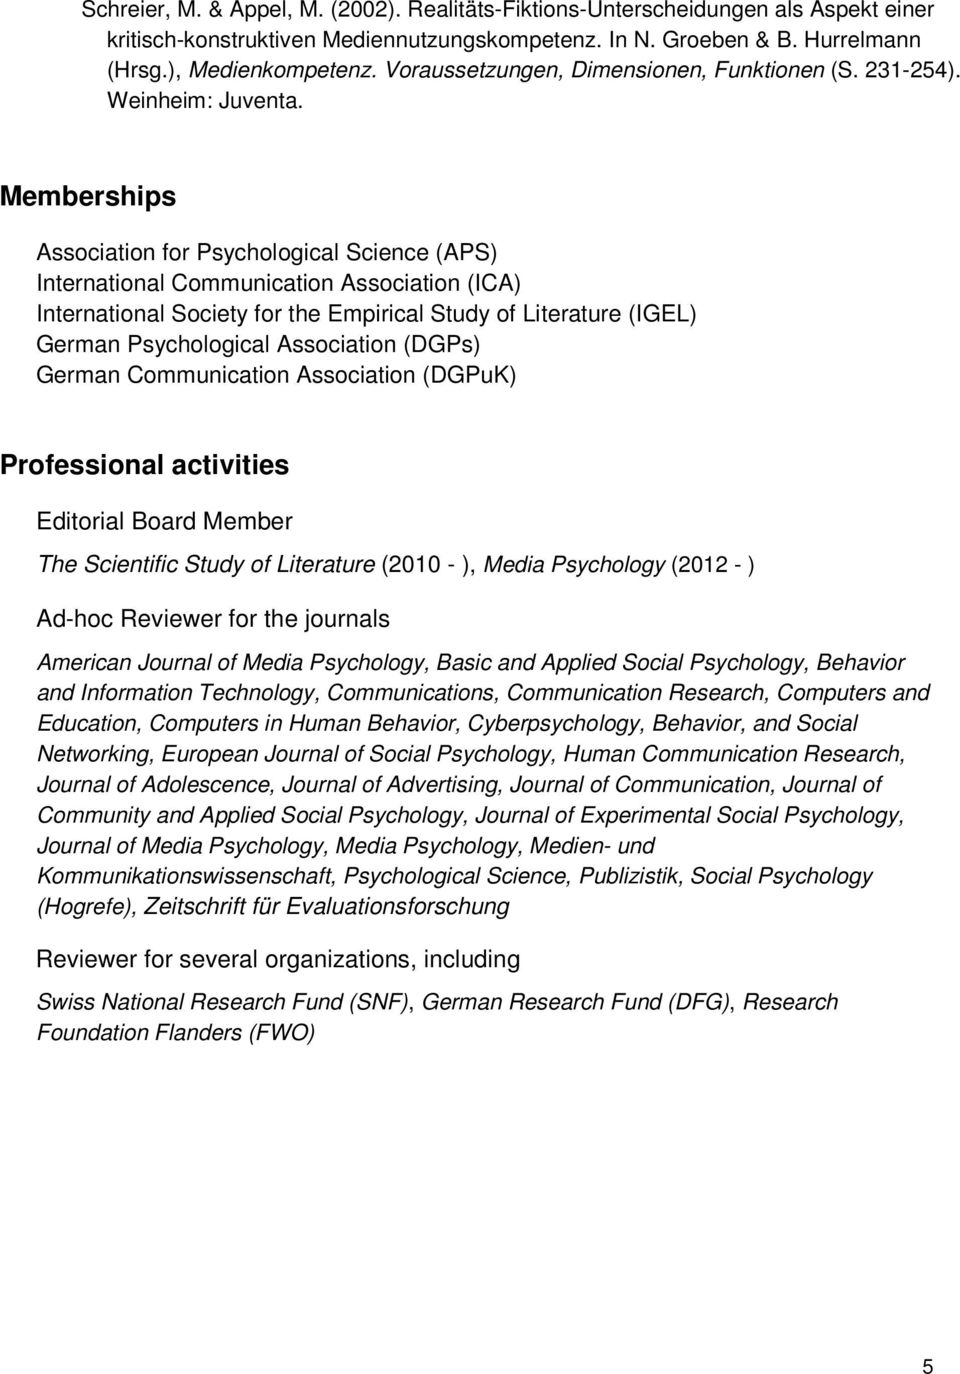 Memberships Association for Psychological Science (APS) International Communication Association (ICA) International Society for the Empirical Study of Literature (IGEL) German Psychological